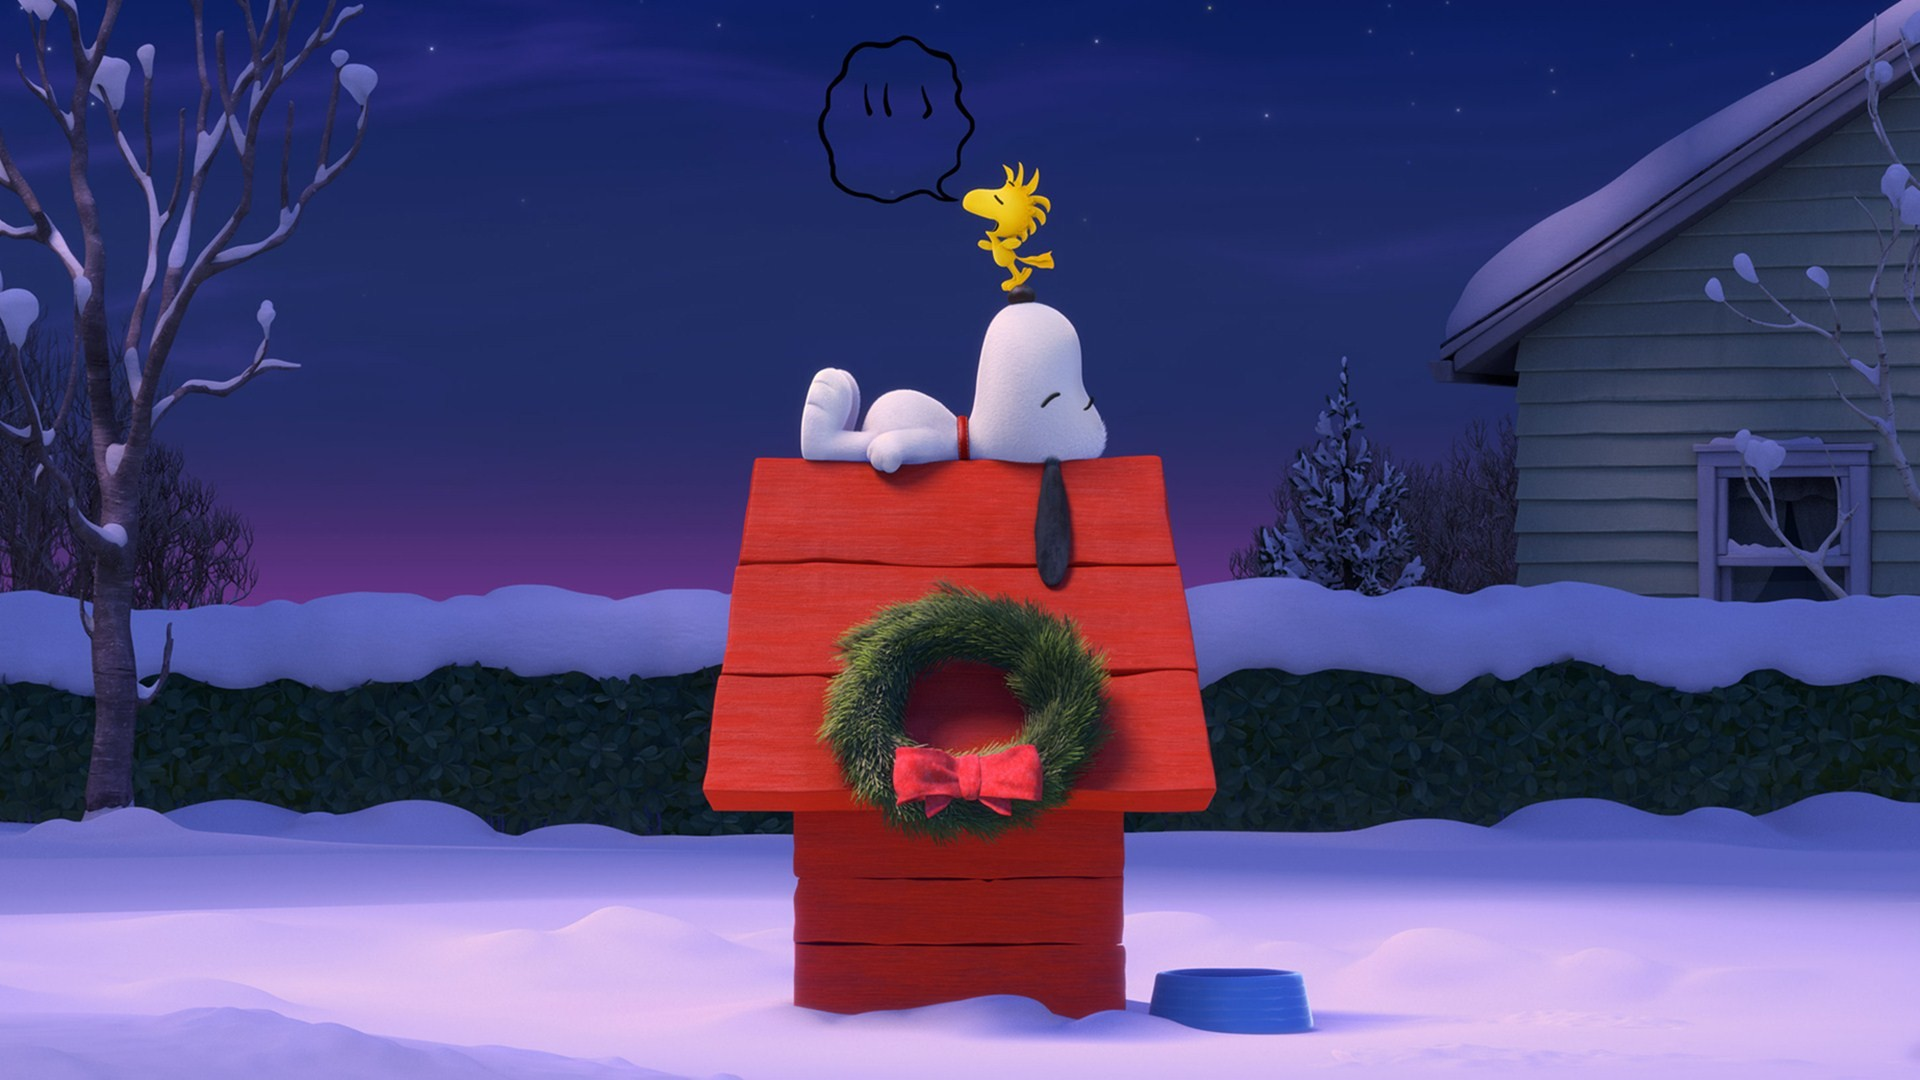 Snoopy Wallpaper Download Free High Resolution Backgrounds For